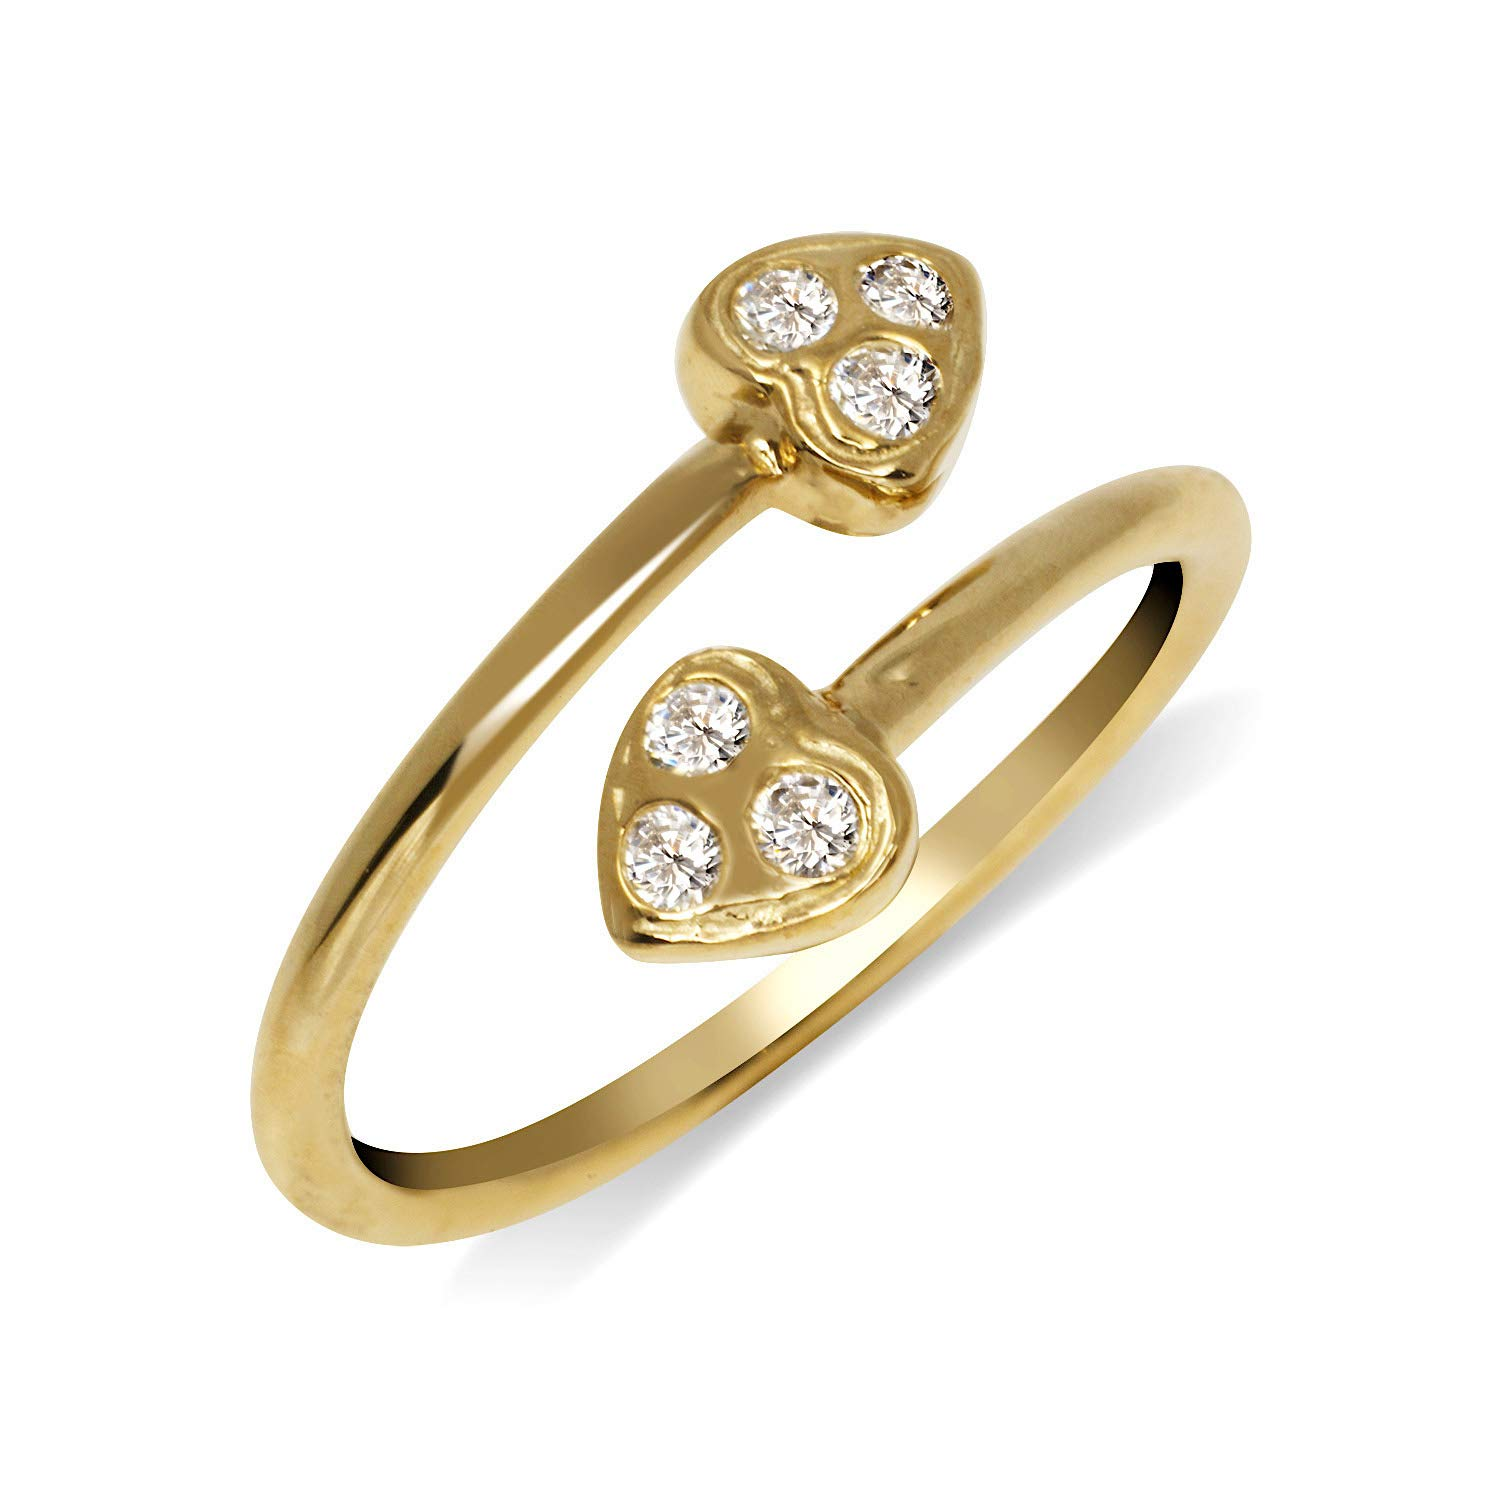 JewelryWeb Solid 10K Yellow or White Gold Small Heart Bypass Adjustable Cubic Zirconia CZ Toe Ring (10mmx15mm) (Yellow-Gold)